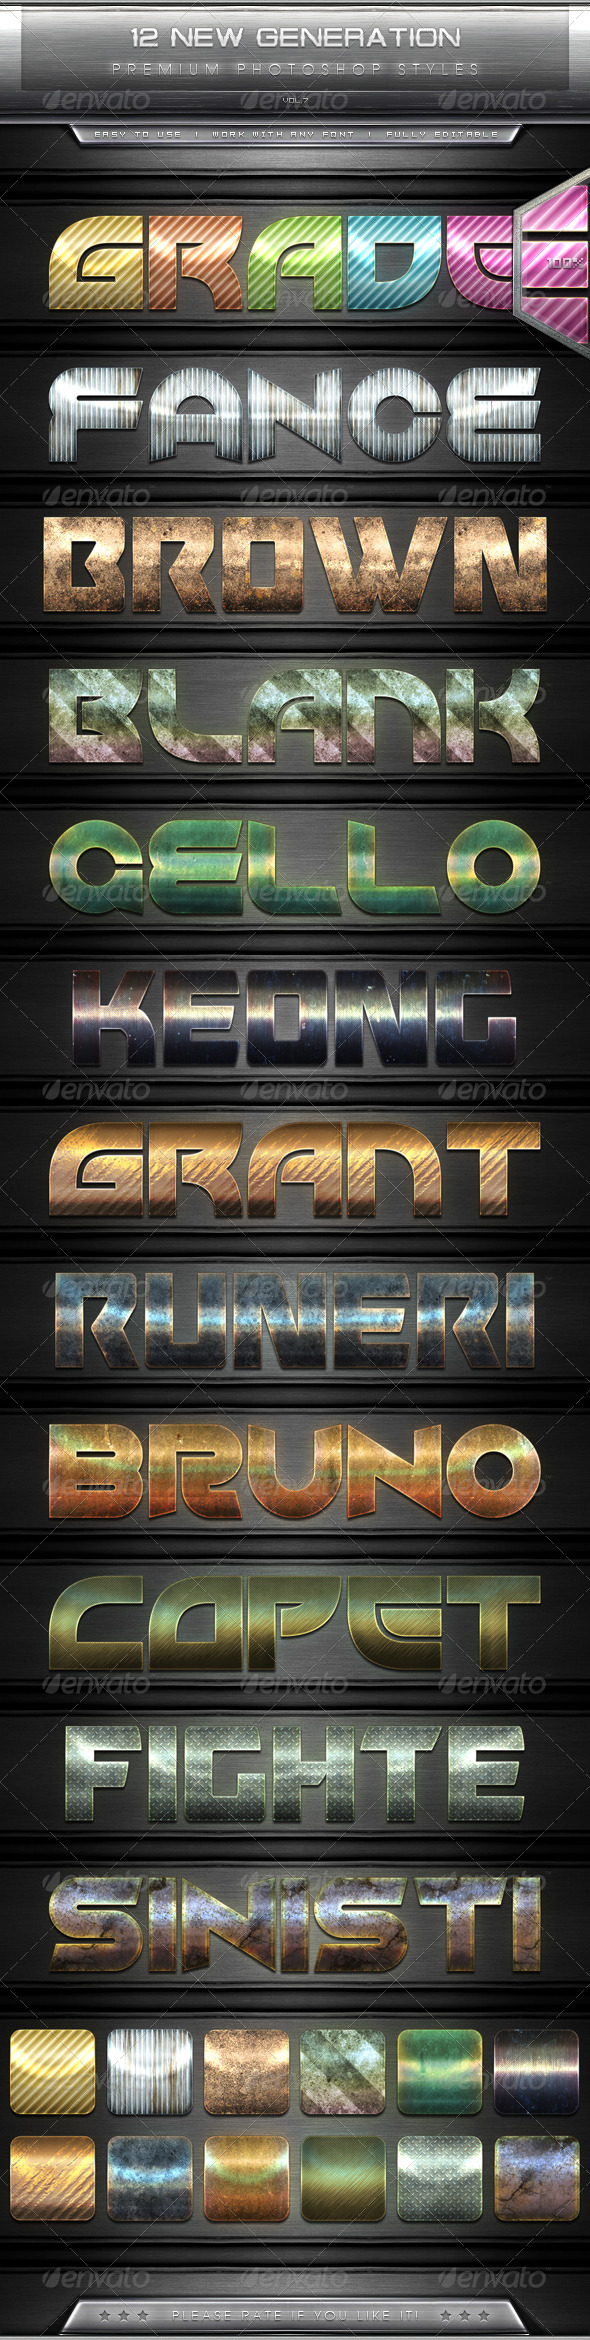 GraphicRiver 12 New Generation Text Effect Styles Vol.7 7816070